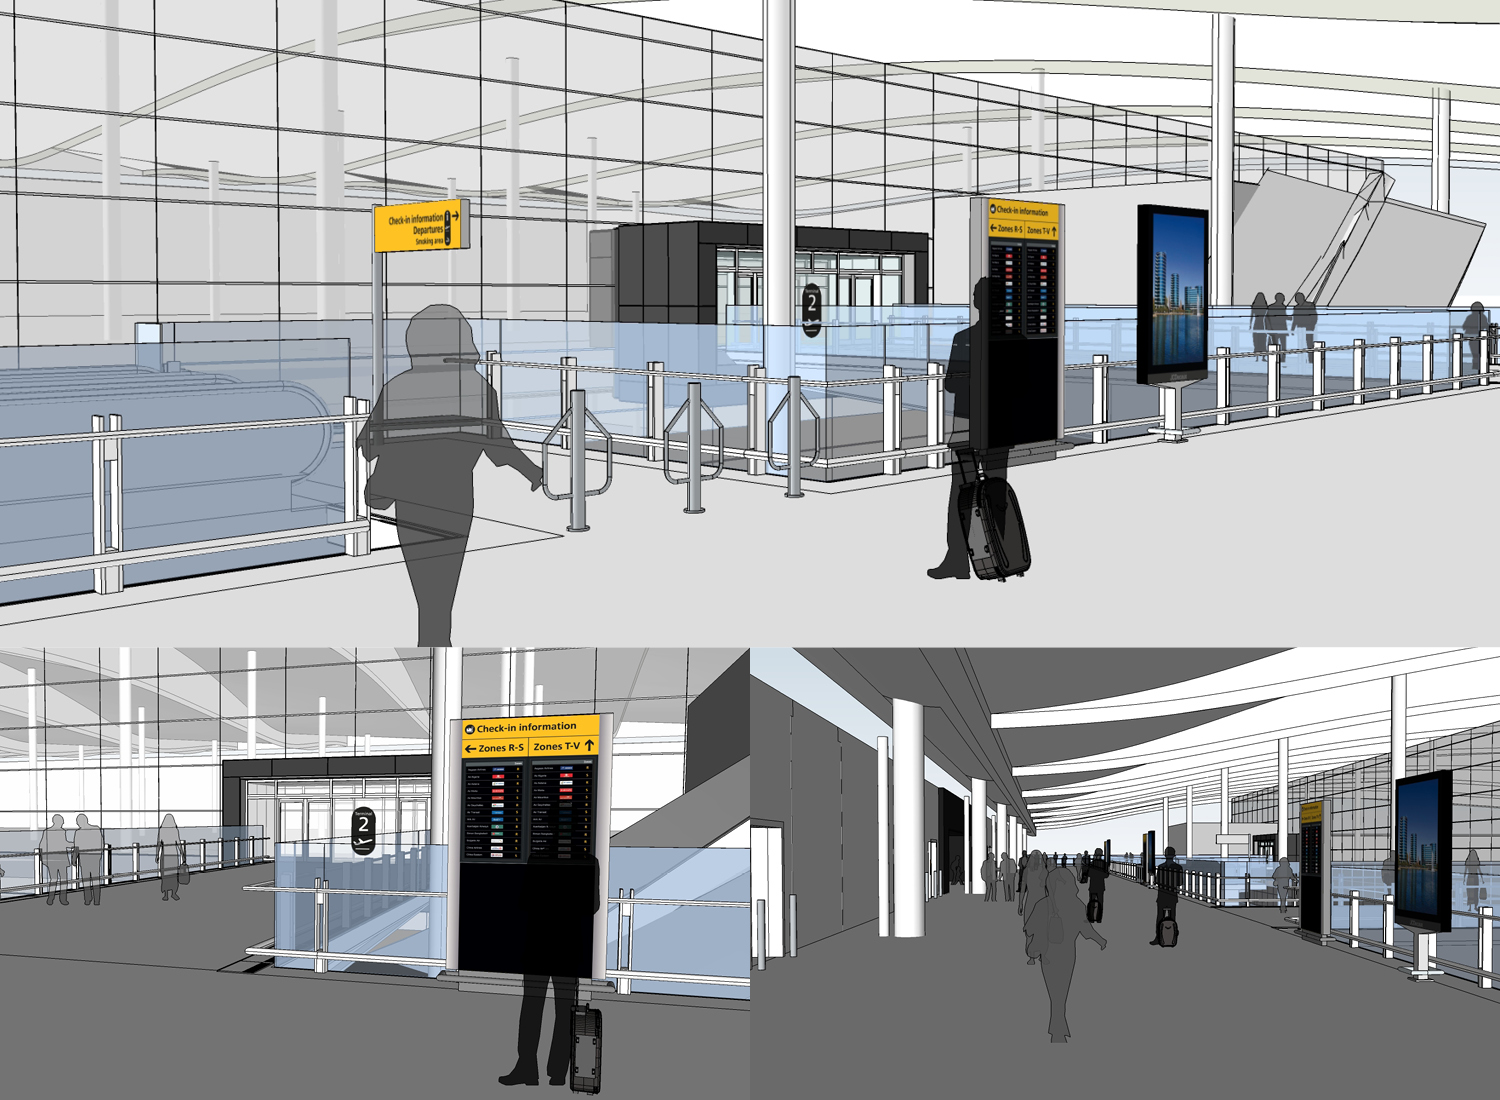 Visualizations of Signage placement during concept design